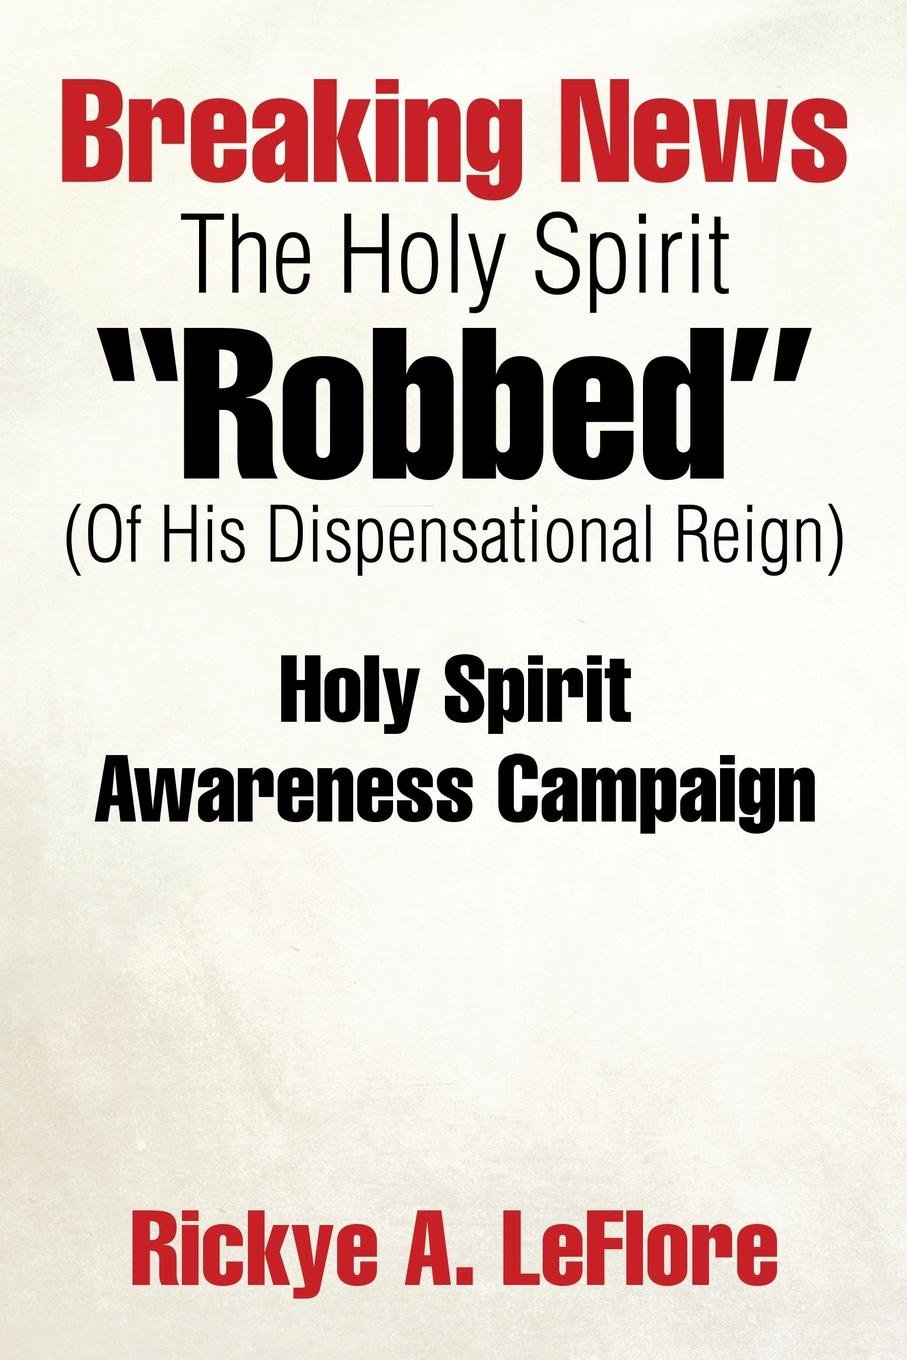 Rickye A. LeFlore Breaking News The Holy Spirit Robbed (Of His Dispensational Reign). Holy Spirit Awareness Campaign irene bonney faulkes d d the holy spirit came